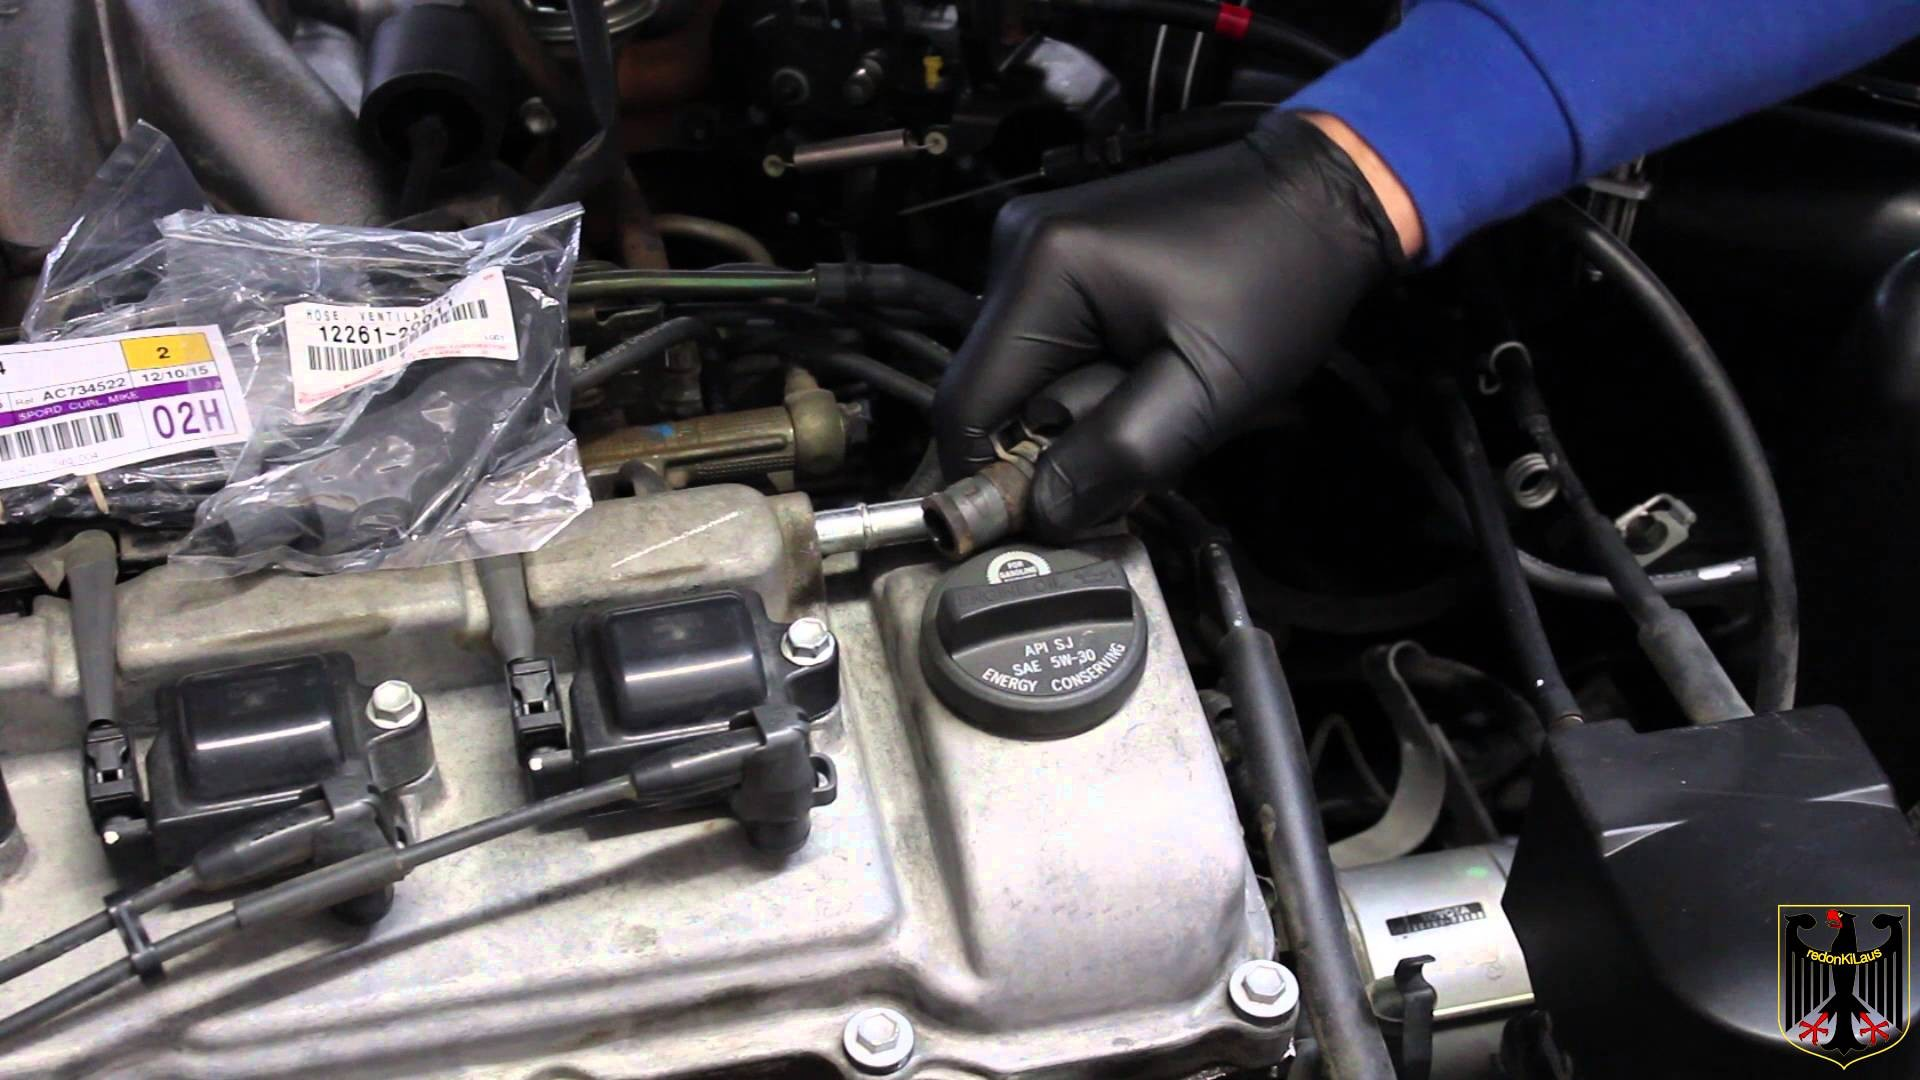 1997 Toyota Avalon Engine Diagram How To Install Replace Radiator 3800 Vacume Lines 2001 Camry Vacuum Line Replacement Of